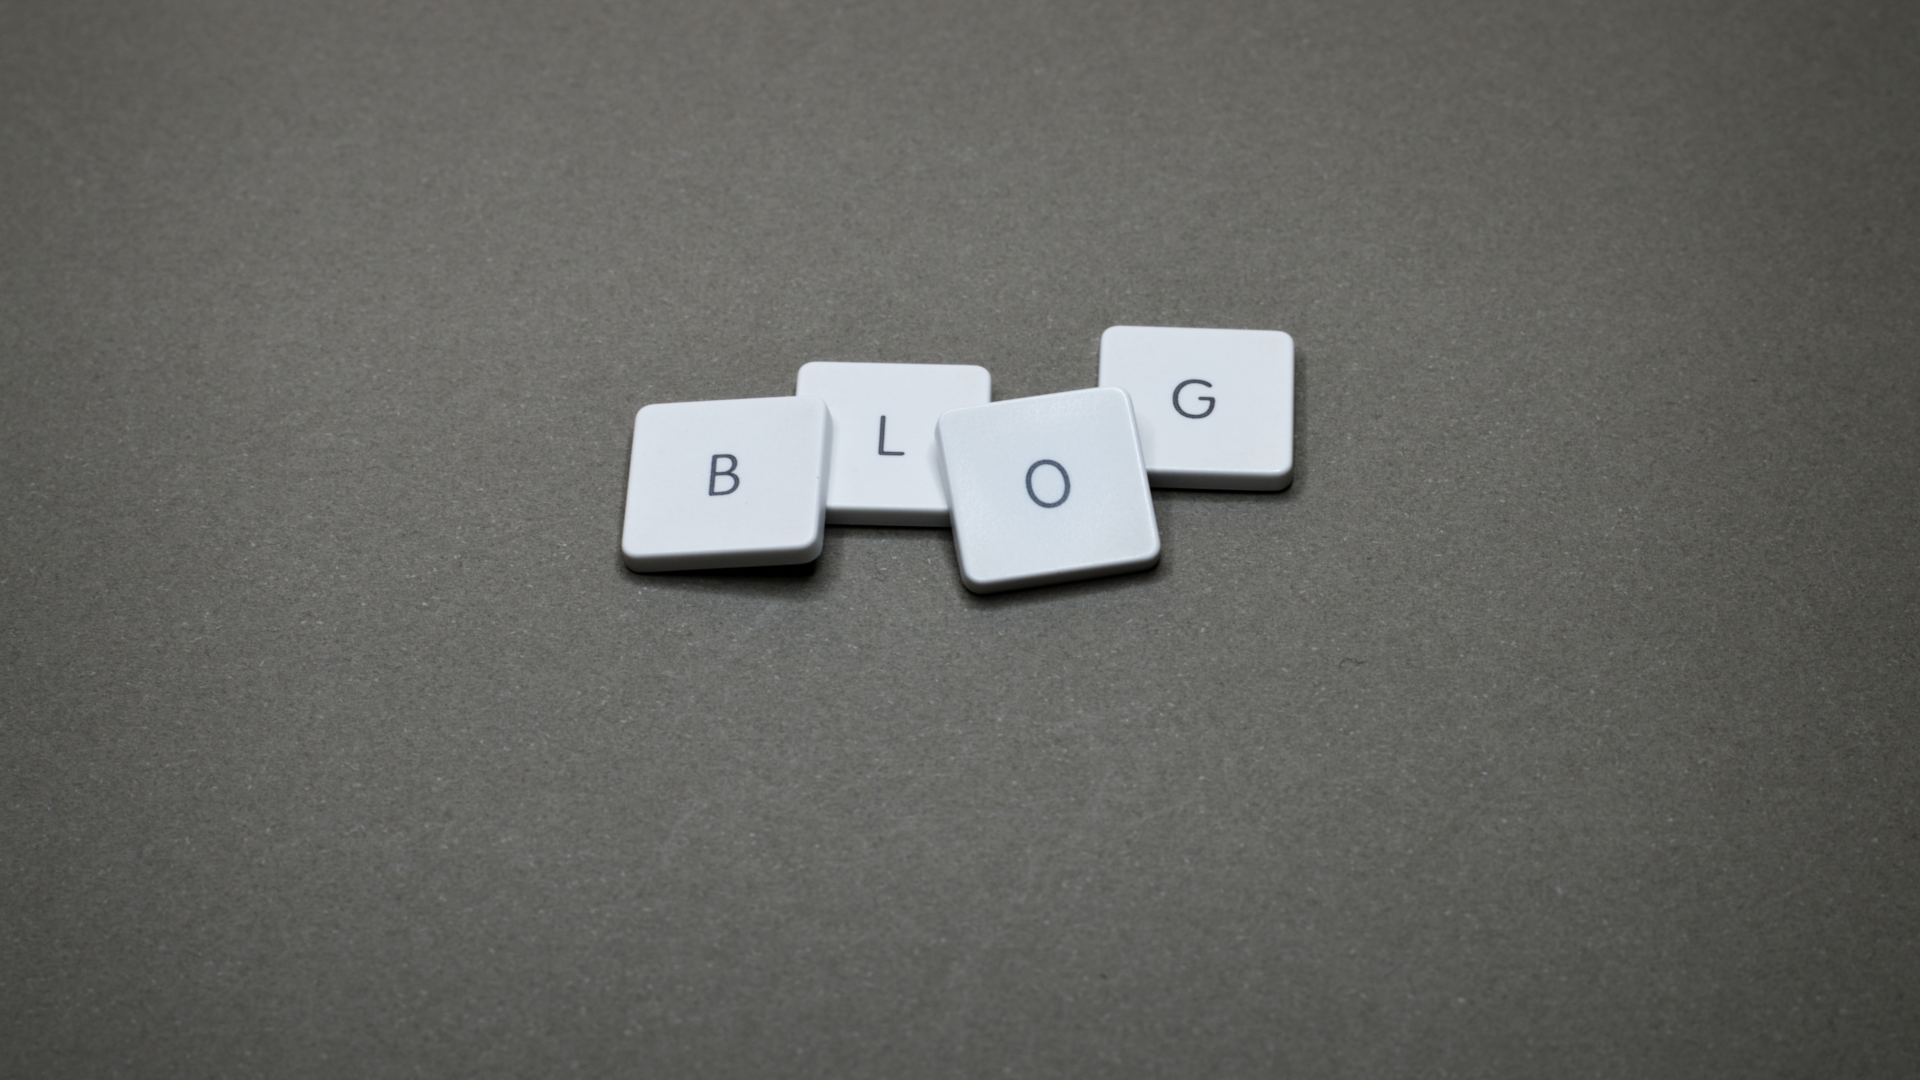 The Do's and Don'ts of Writing Blogs